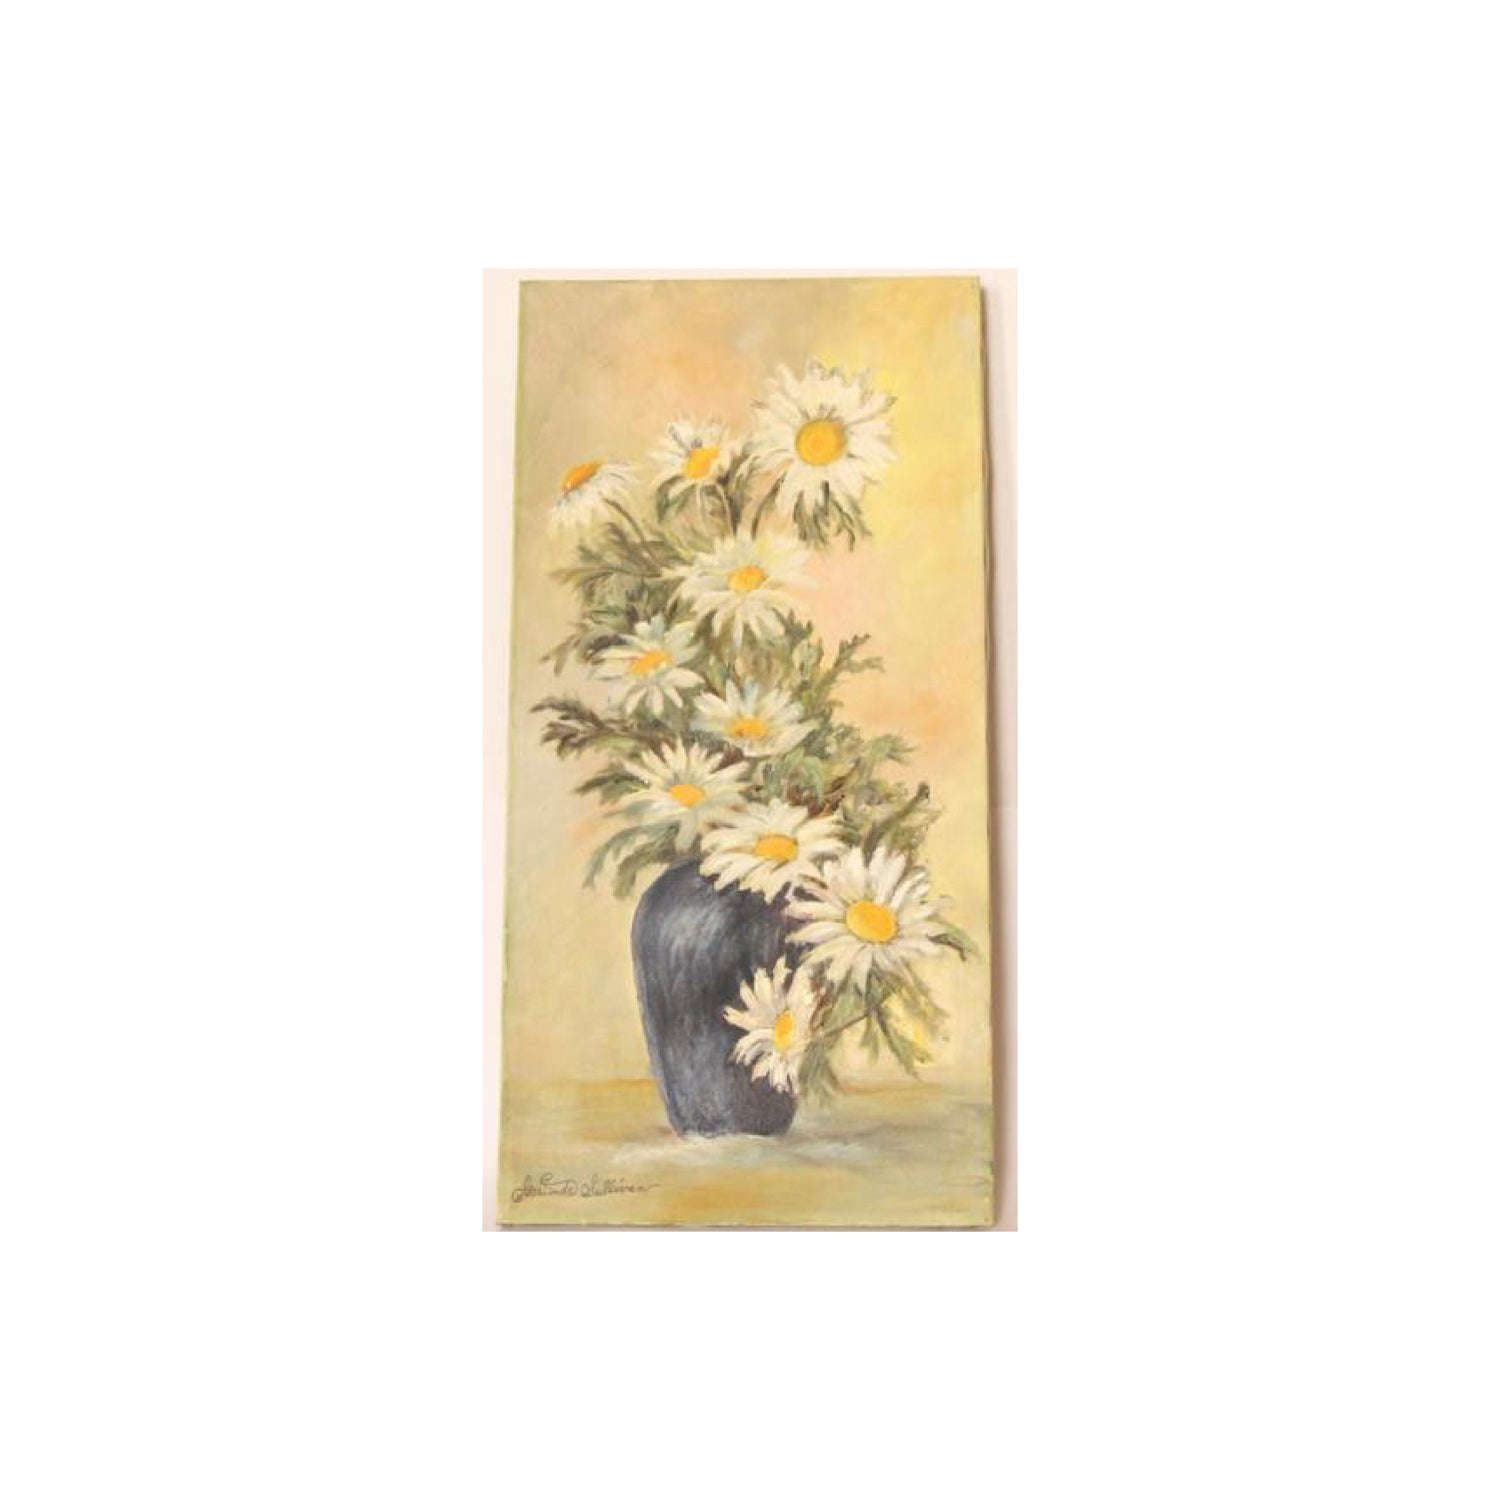 Vintage Oil Painting Flowers by Gertrude Sullivan